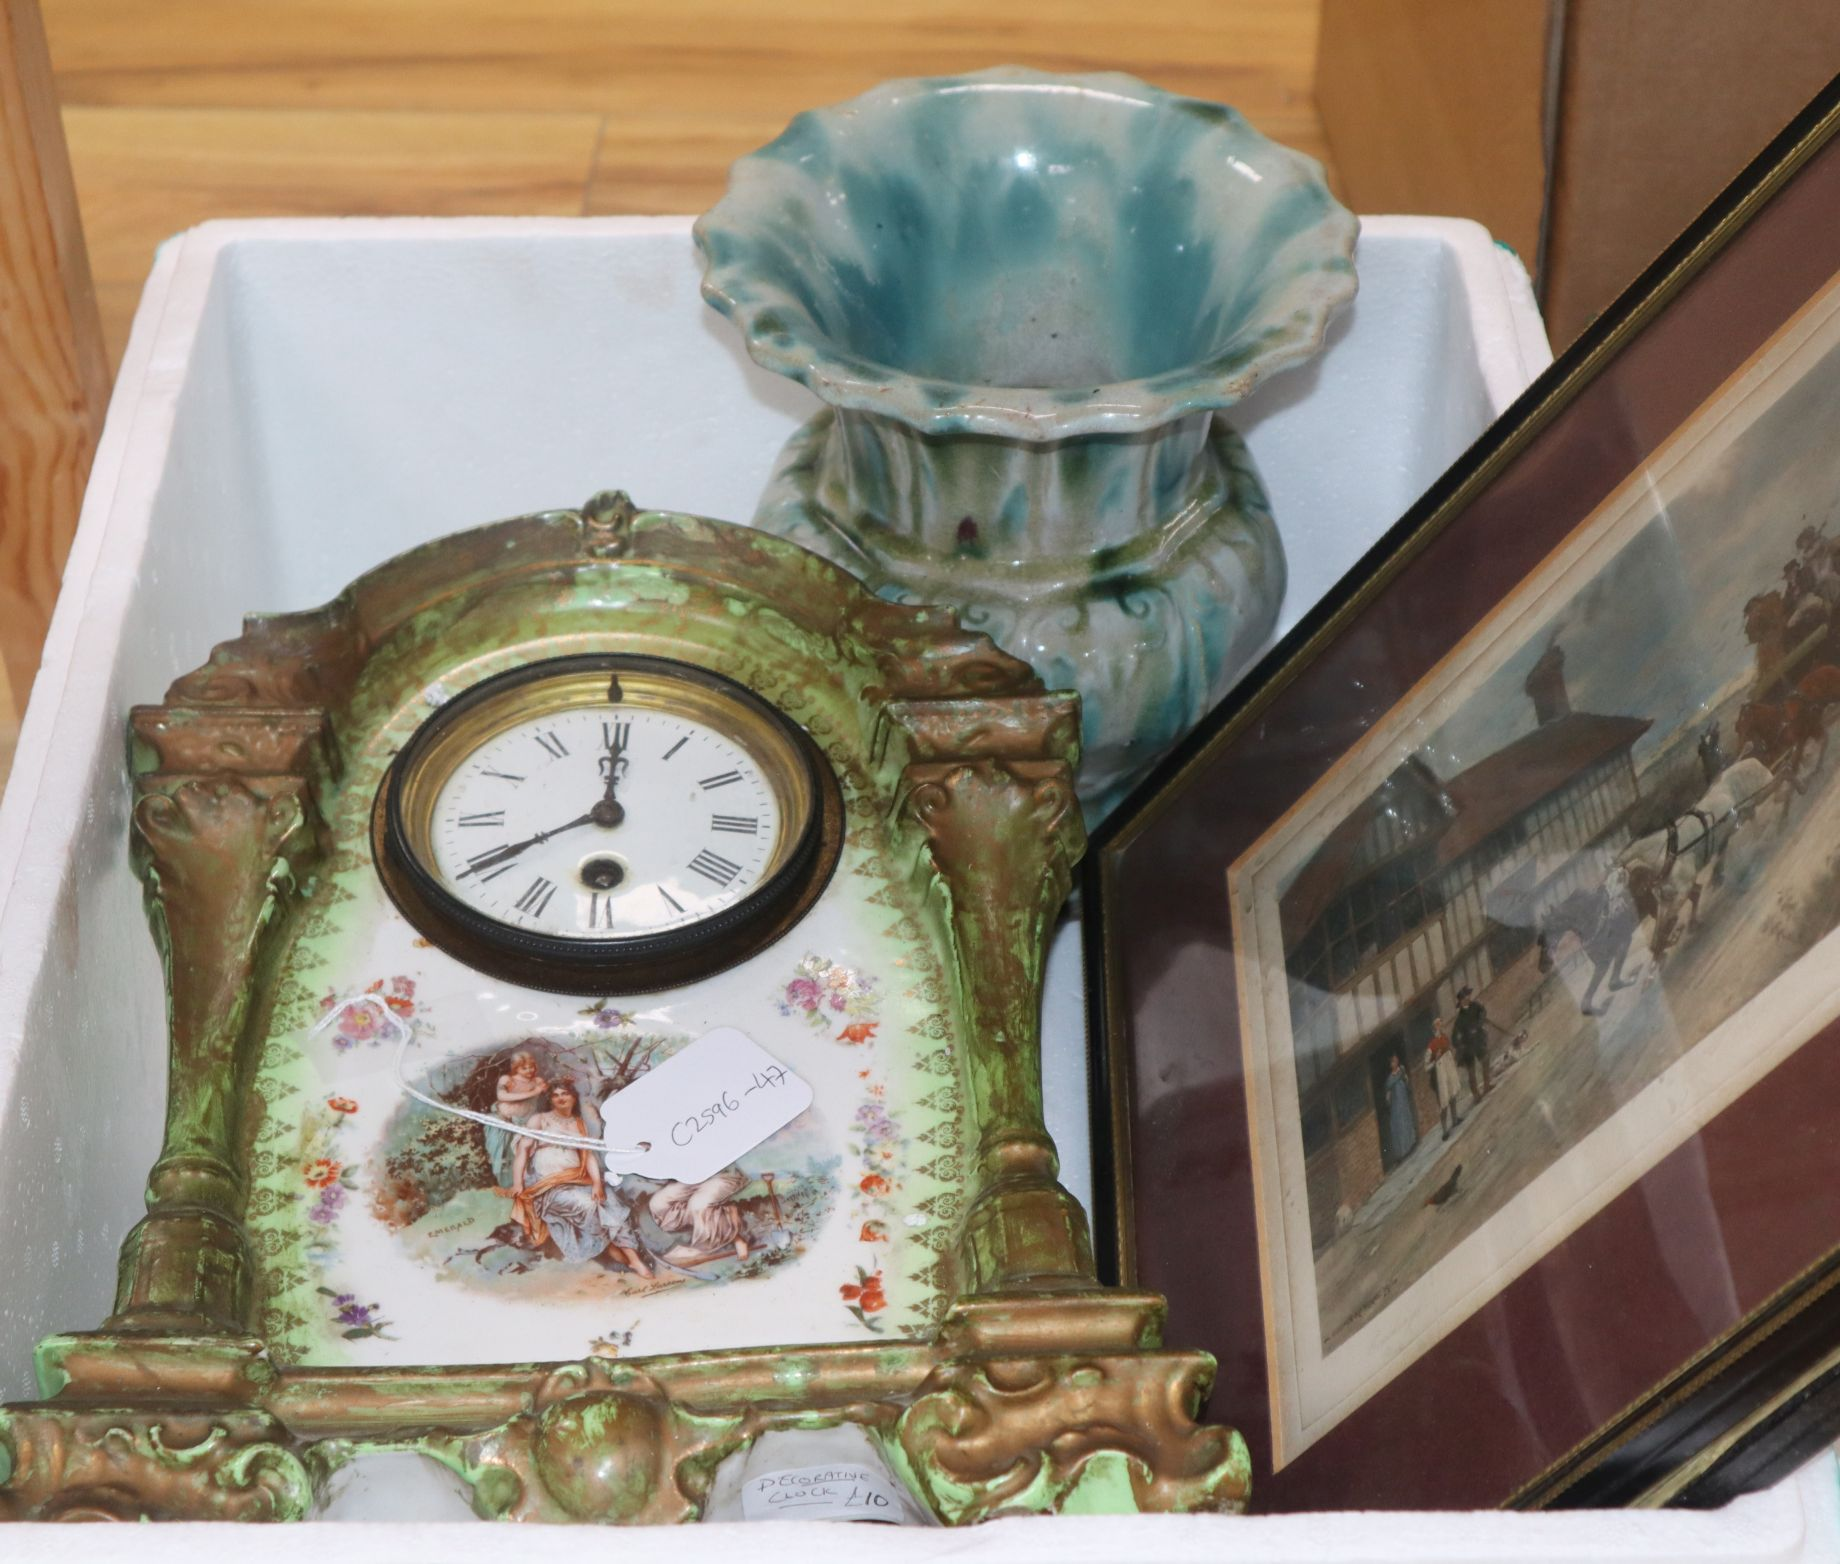 Lot 186 - A pottery painted timepiece, a vase and two prints